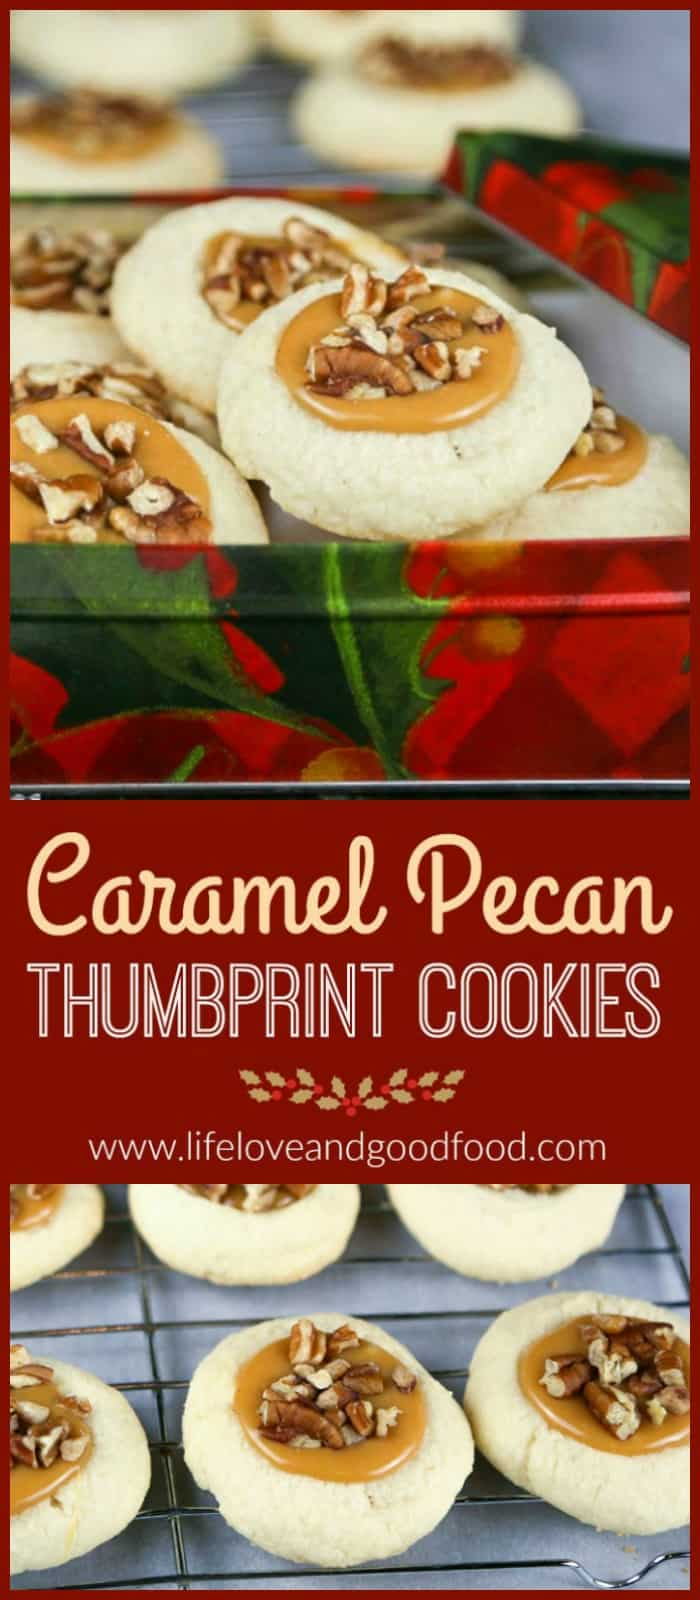 Celebrate the Sweetest Season with Caramel Pecan Thumbprint Cookies—buttery shortbread with creamy caramel centers topped with pecans.@cookies4kids #sweetestseasoncookies